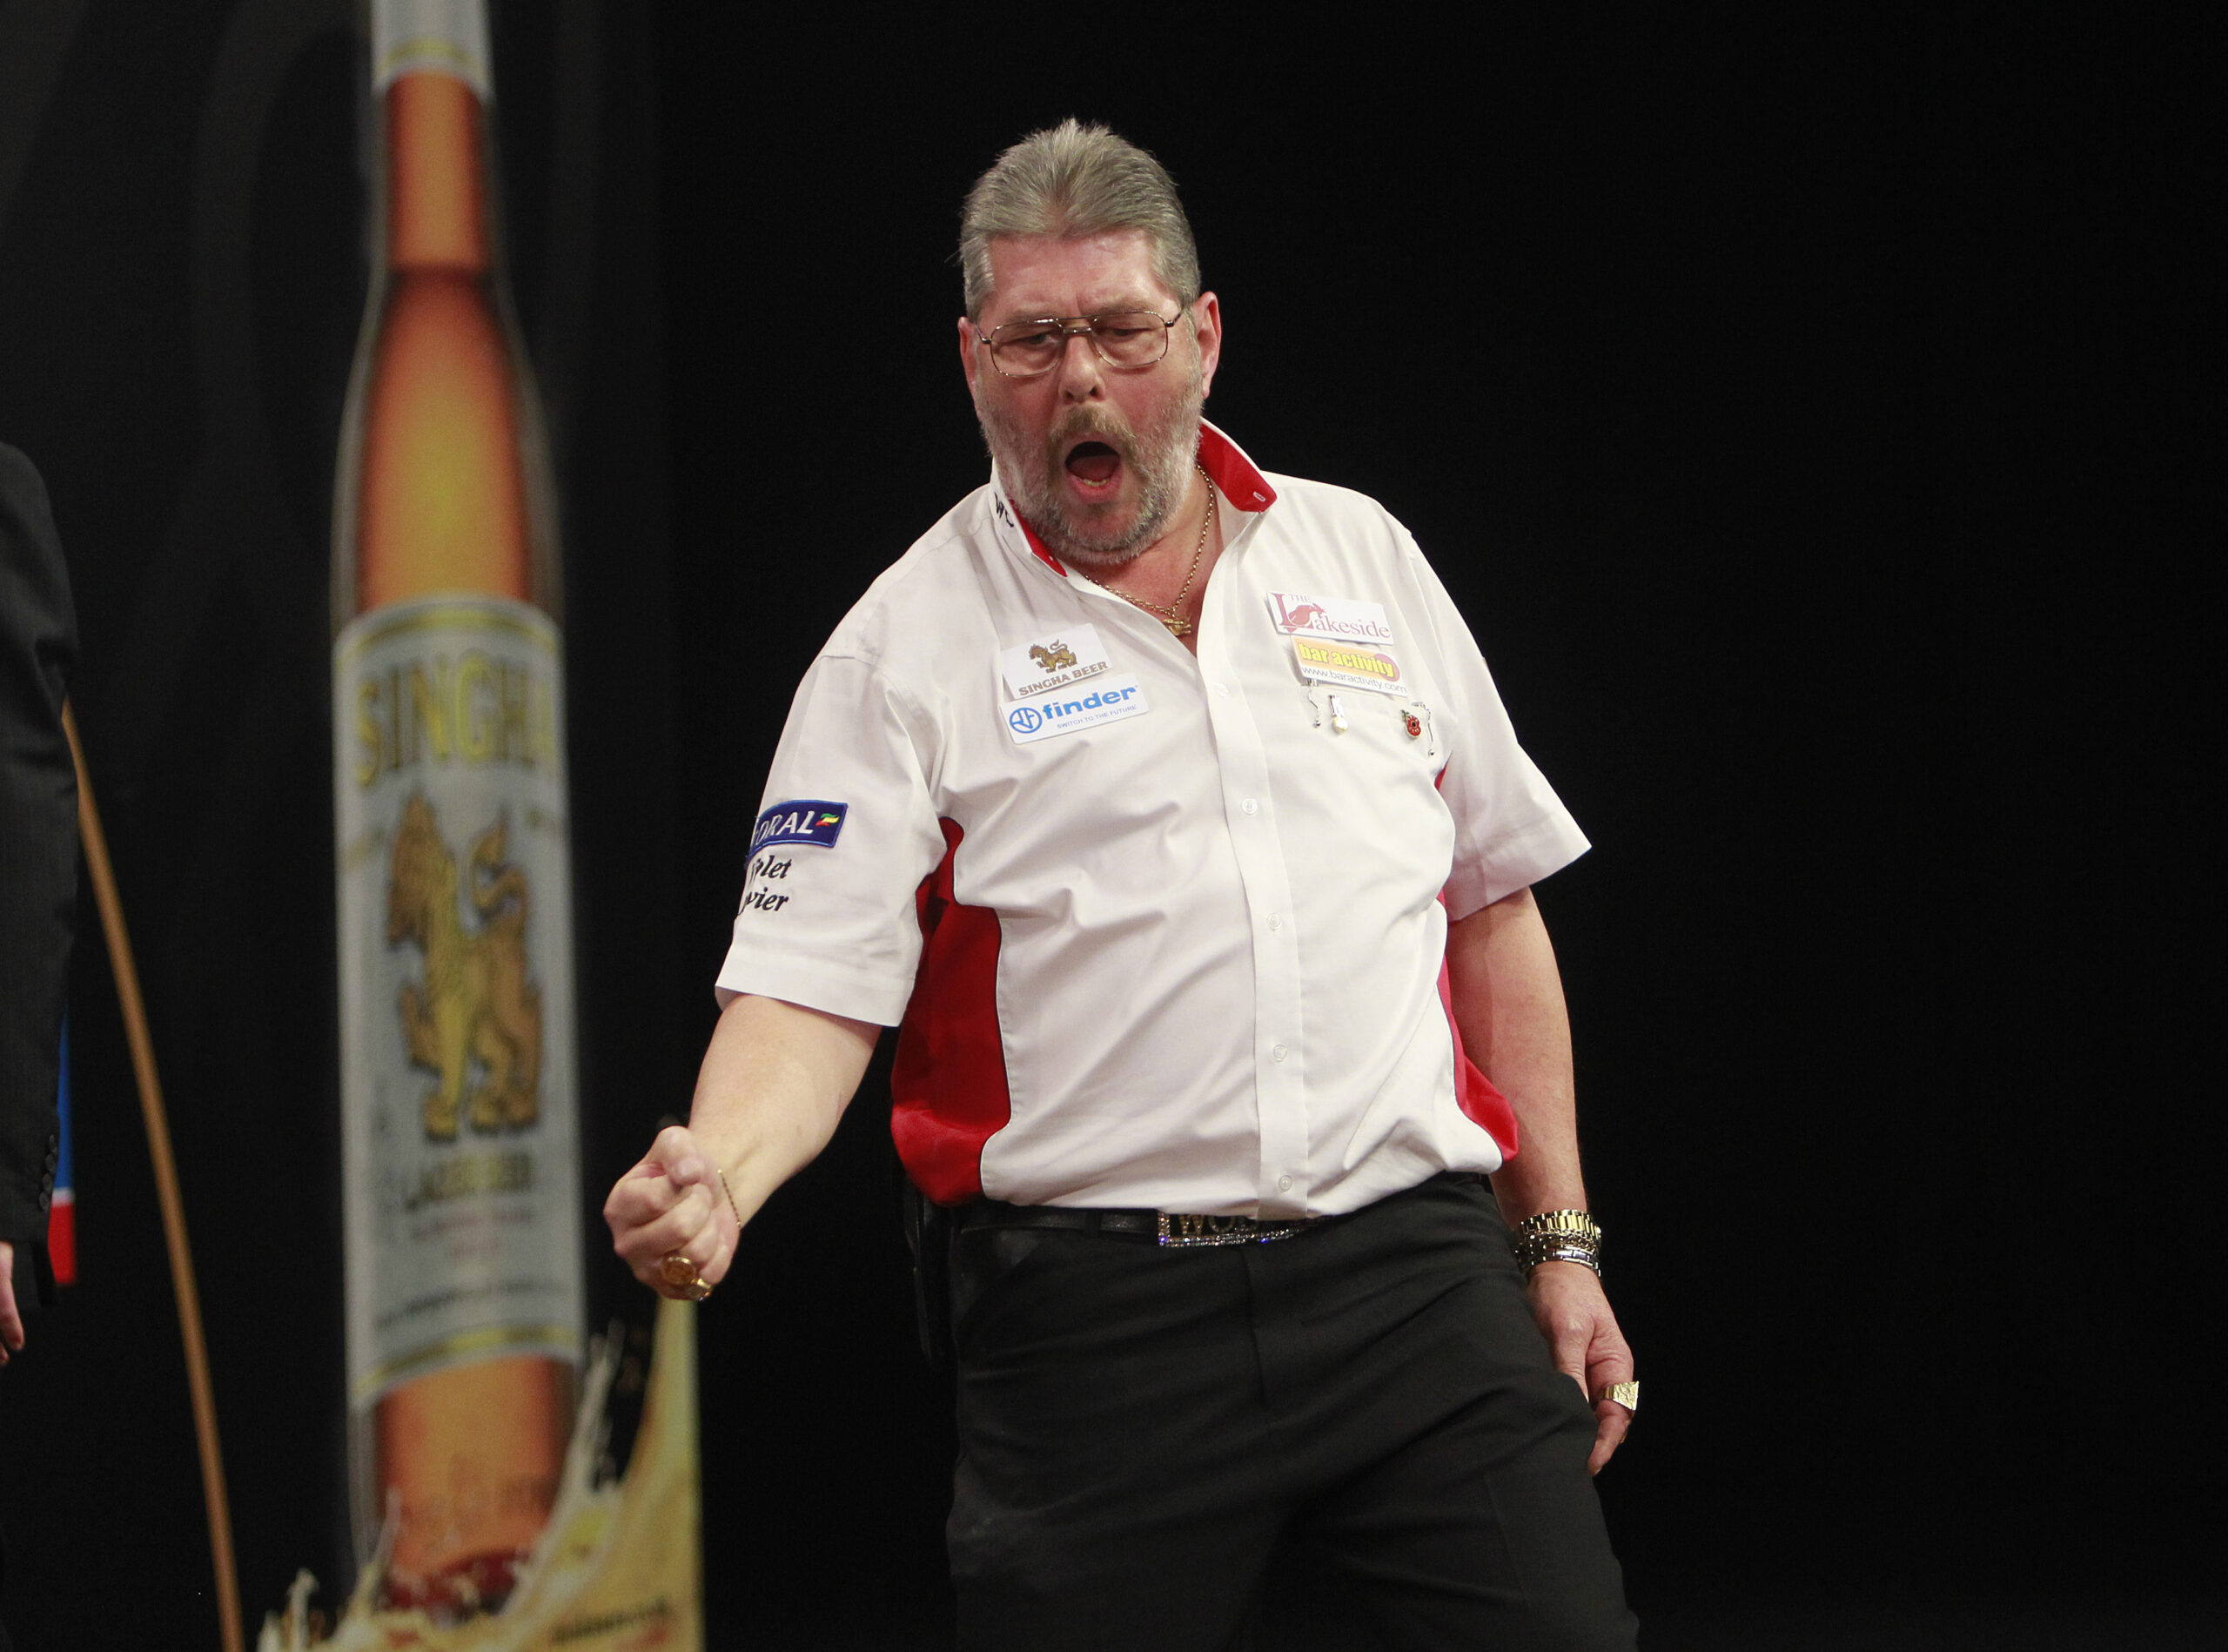 Online Darts Live League Phase 2 Champions Week Fixtures, Results and How to Watch